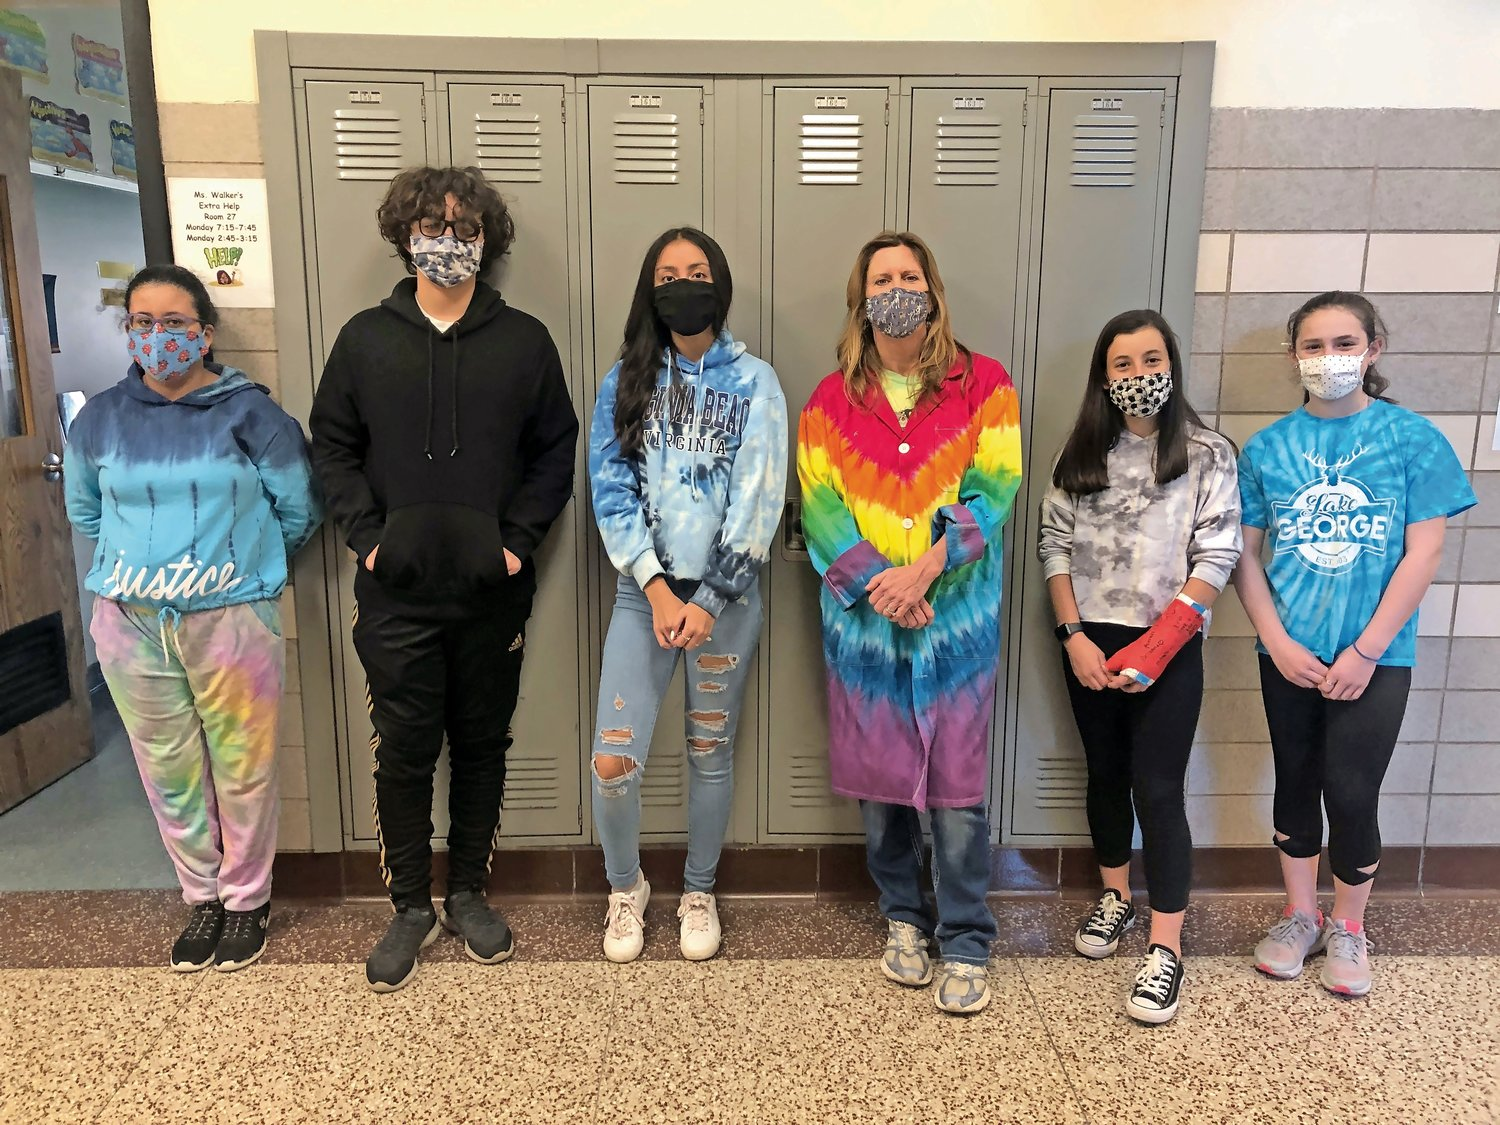 Students and staff at West Hempstead Middle School wore colorful clothes for Tie Dye Tuesday as part of the school's Mental Health Spirit Week on March 23.